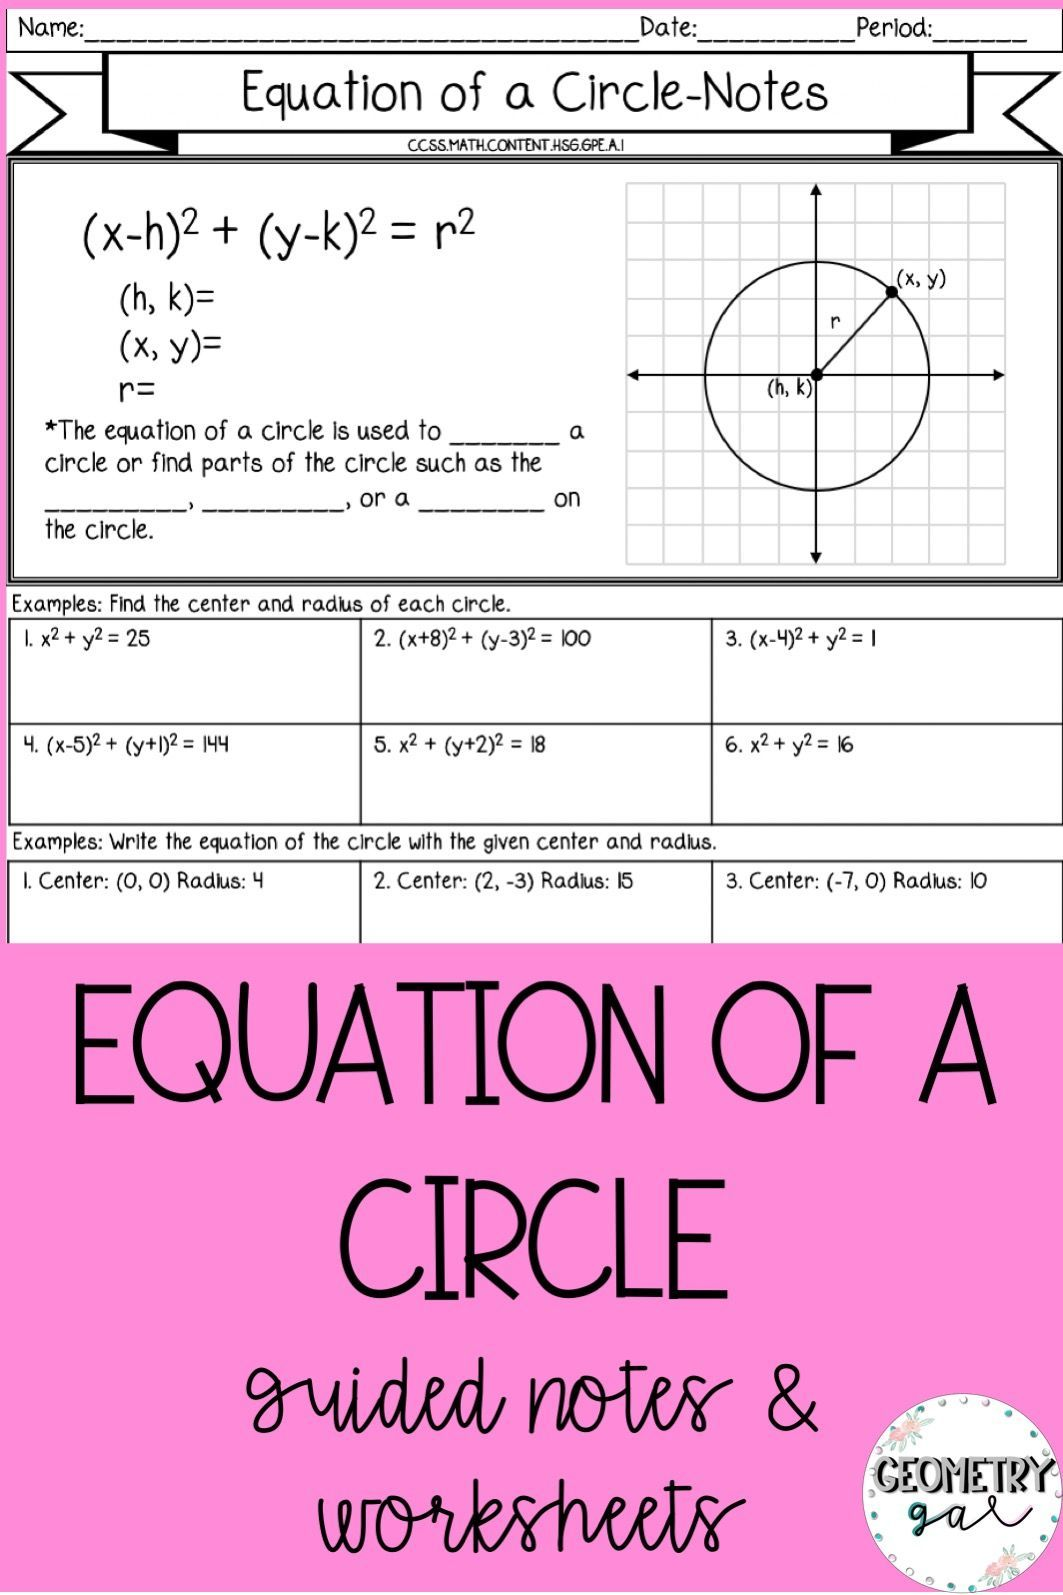 Equation Of A Circle Guided Notes And Worksheets With Images